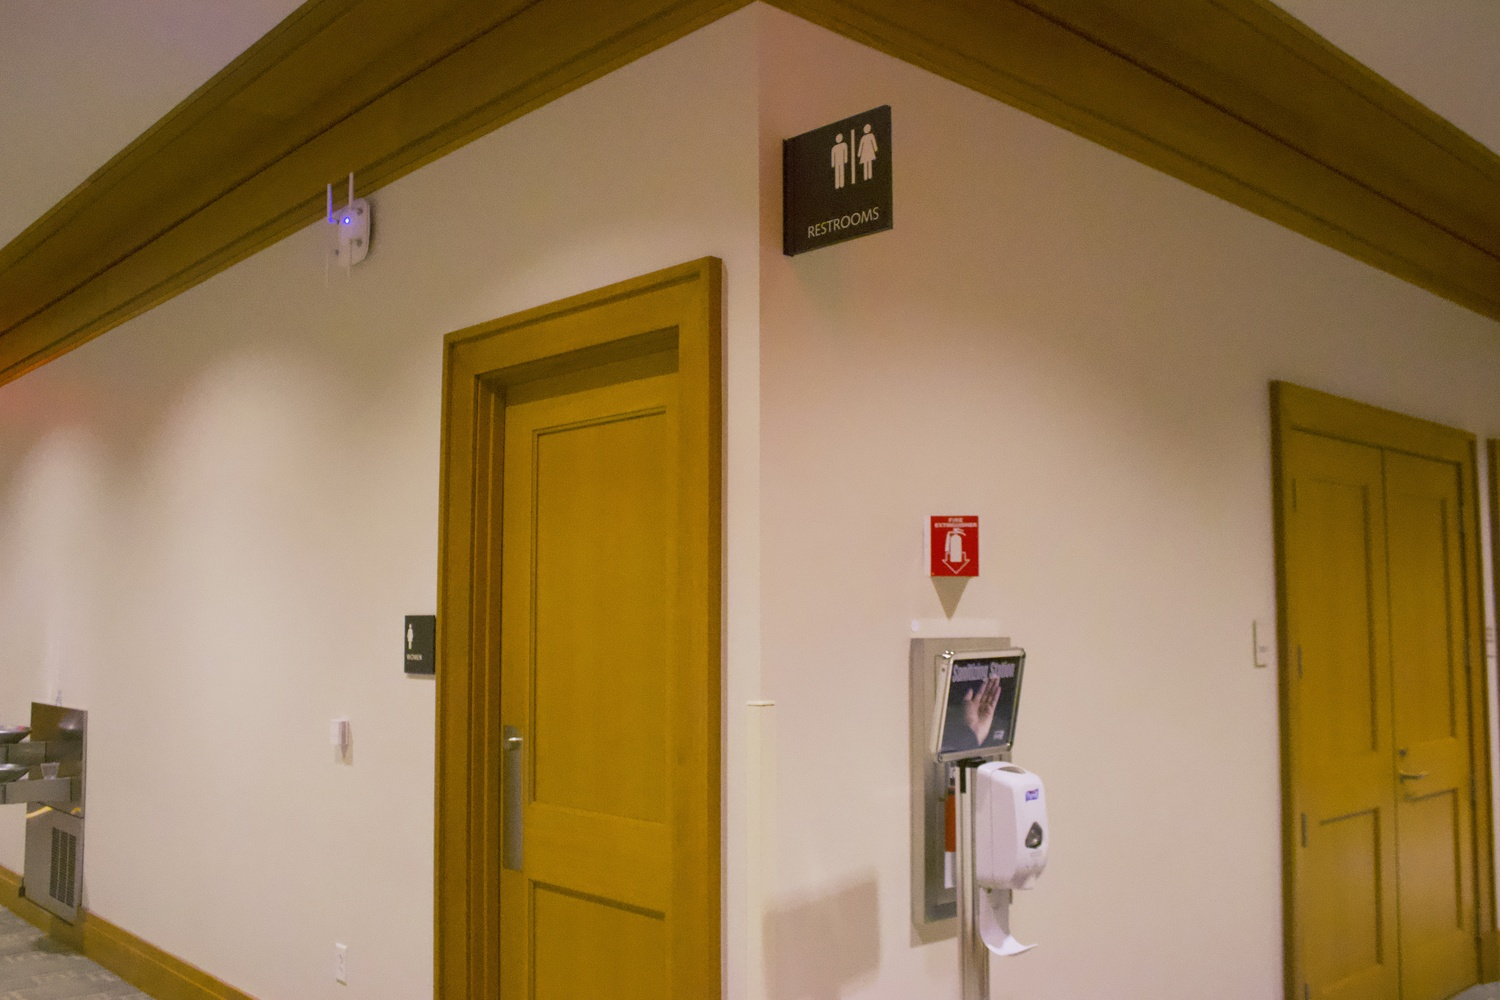 HLS Makes Gender Neutral Bathroom More Accessible After